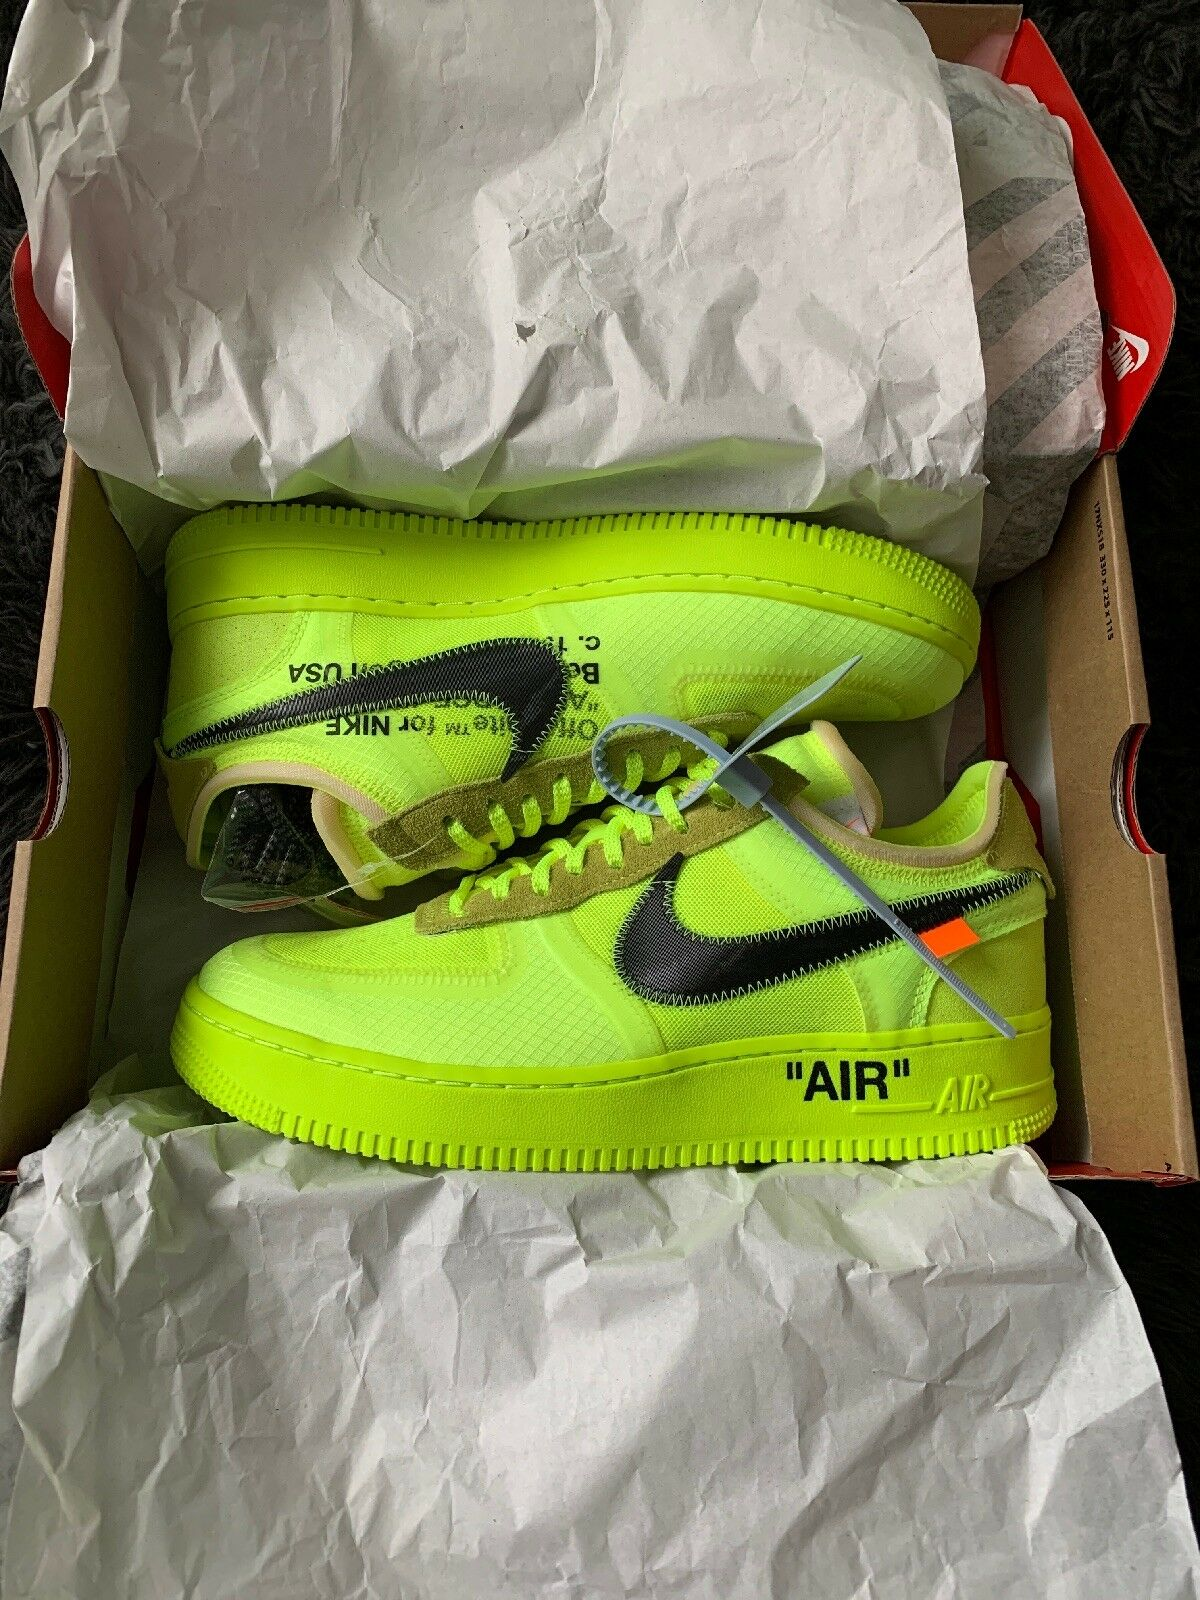 Authentic Nike Off White Air Force 1 Volt Size 9 DS OG One Virgil Abloh The Ten